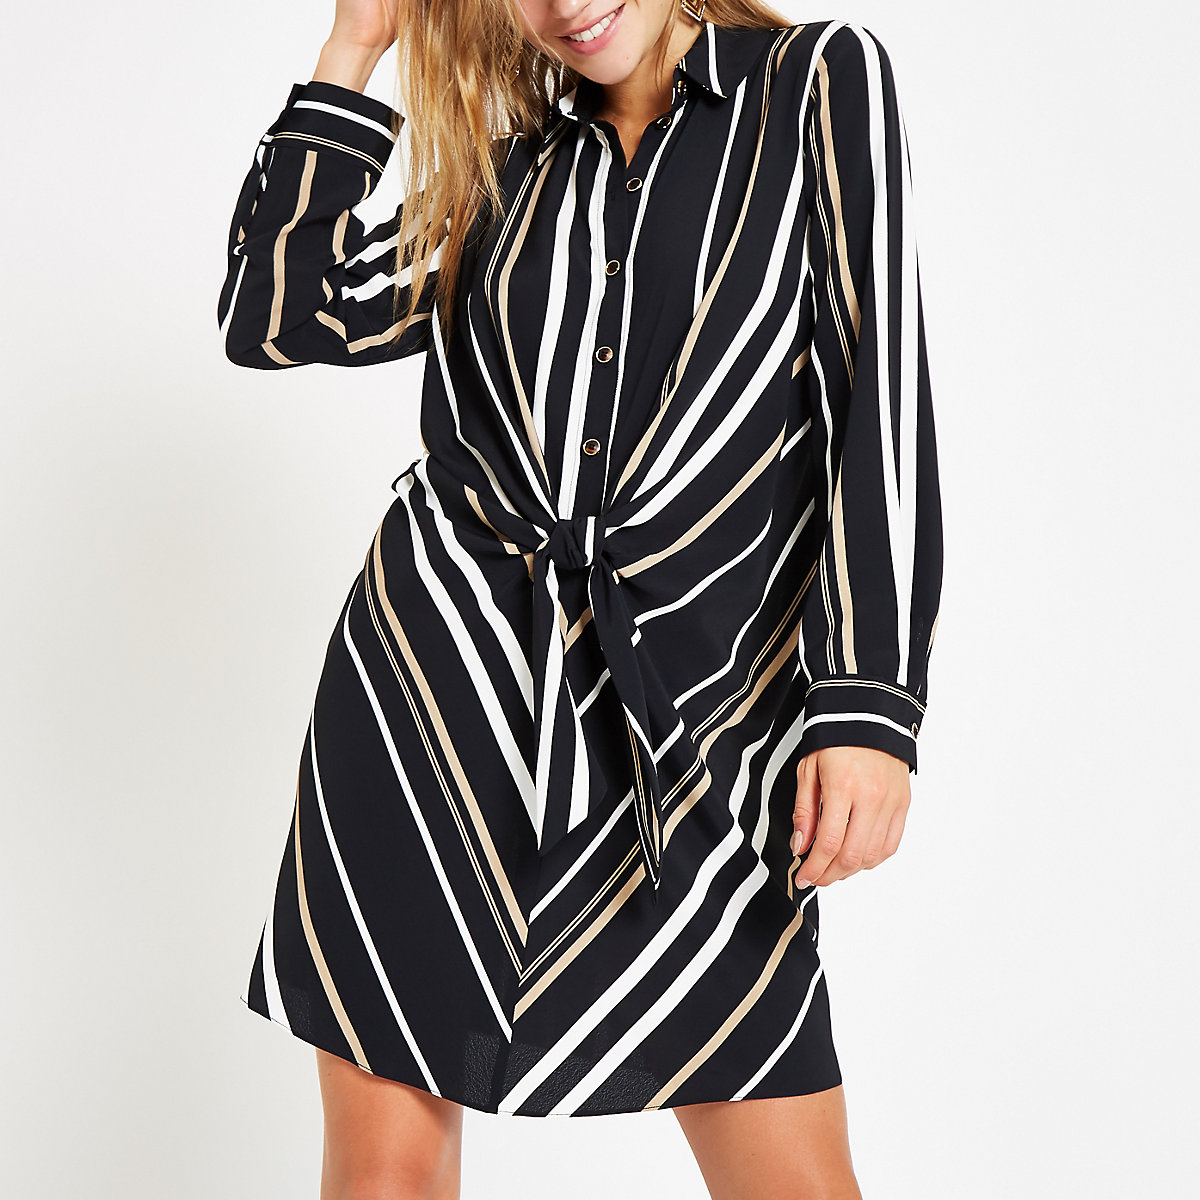 Black stripe tie front shirt dress